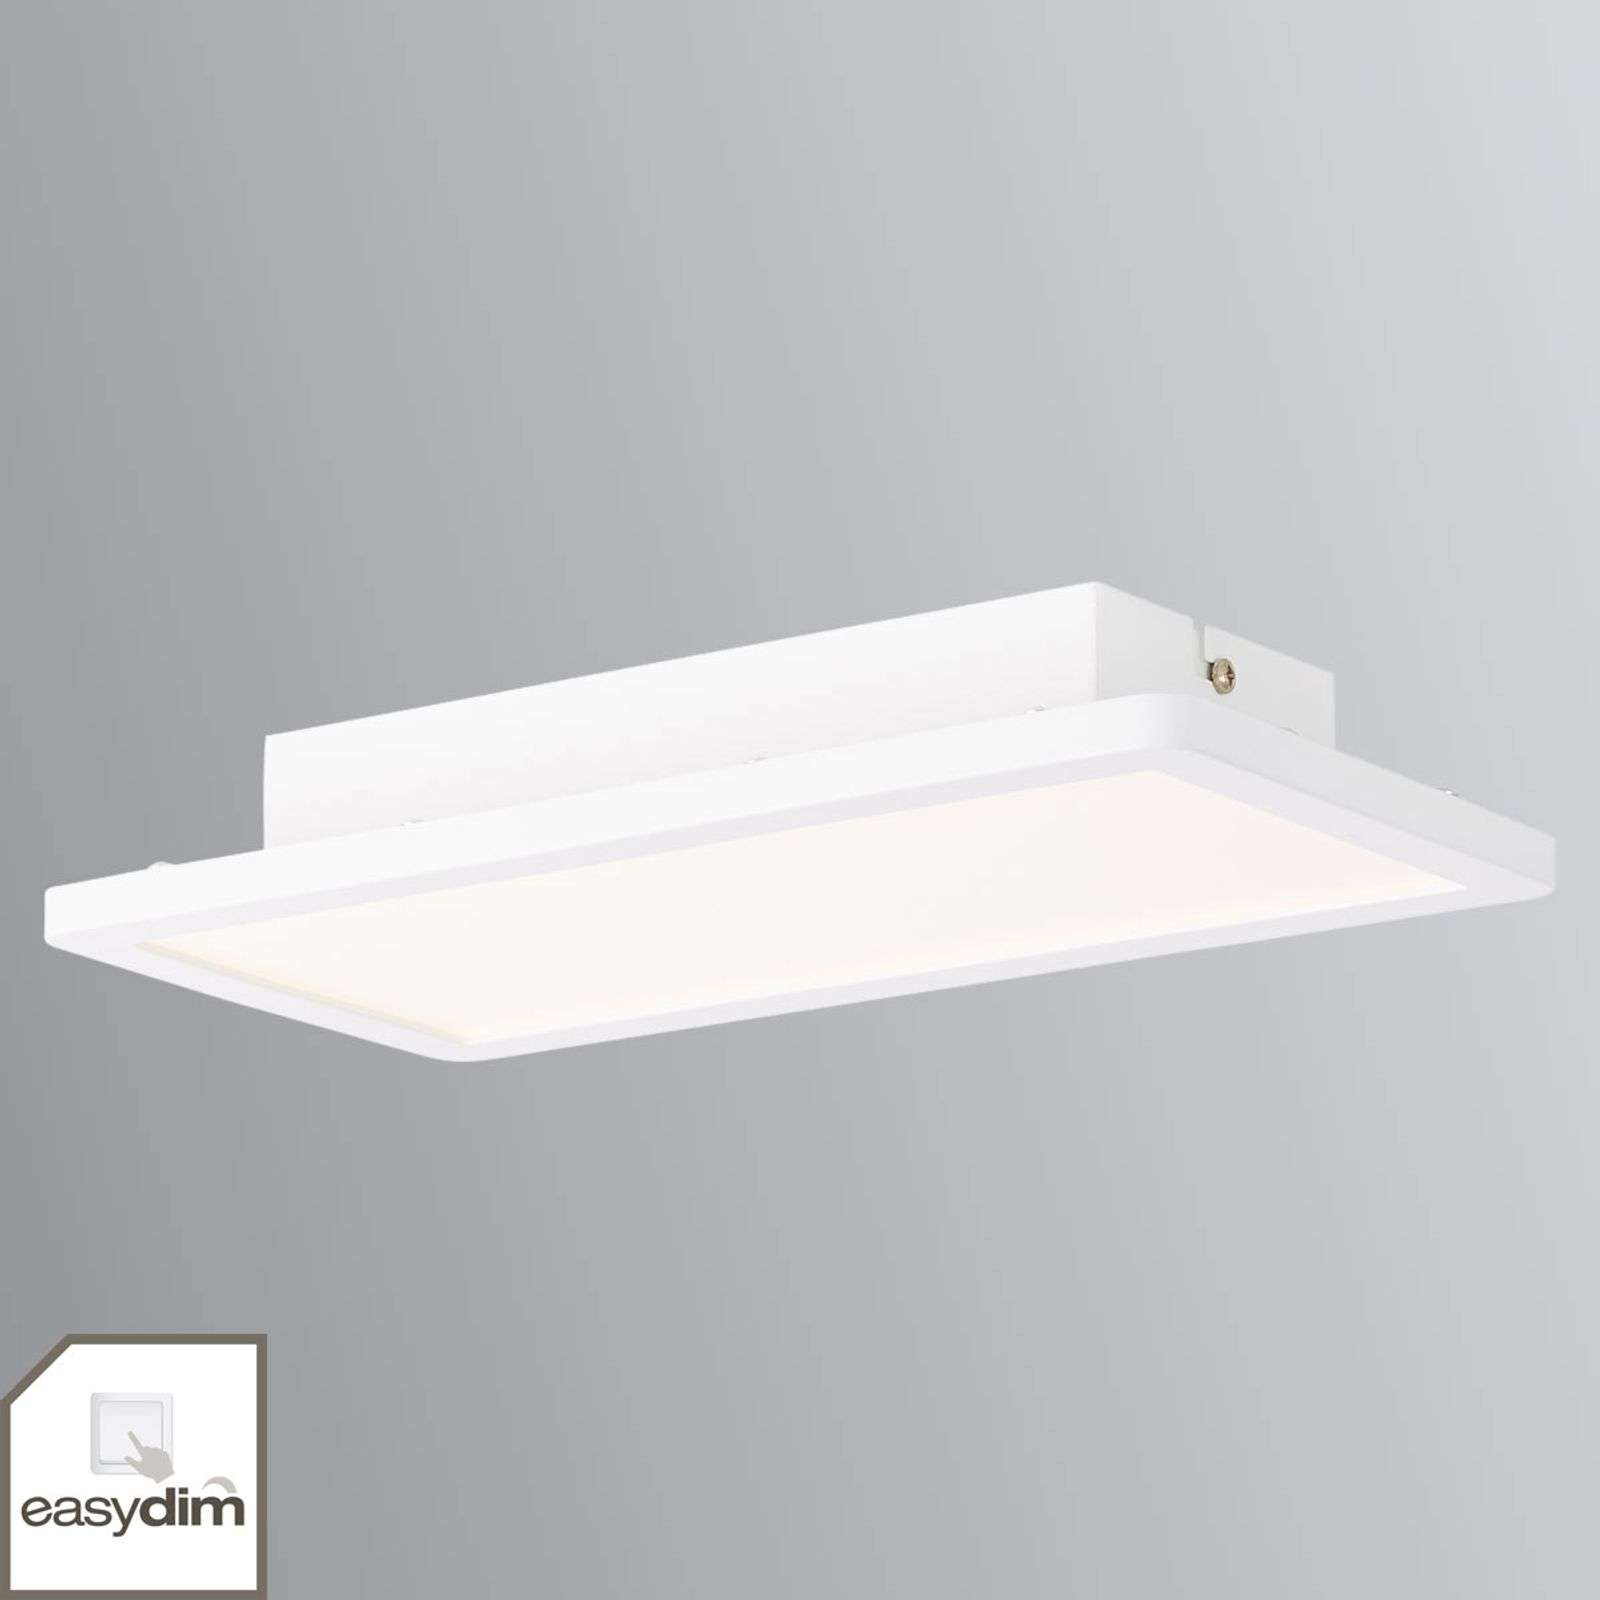 Lampada LED da soffitto Scope bianca dimmerabile